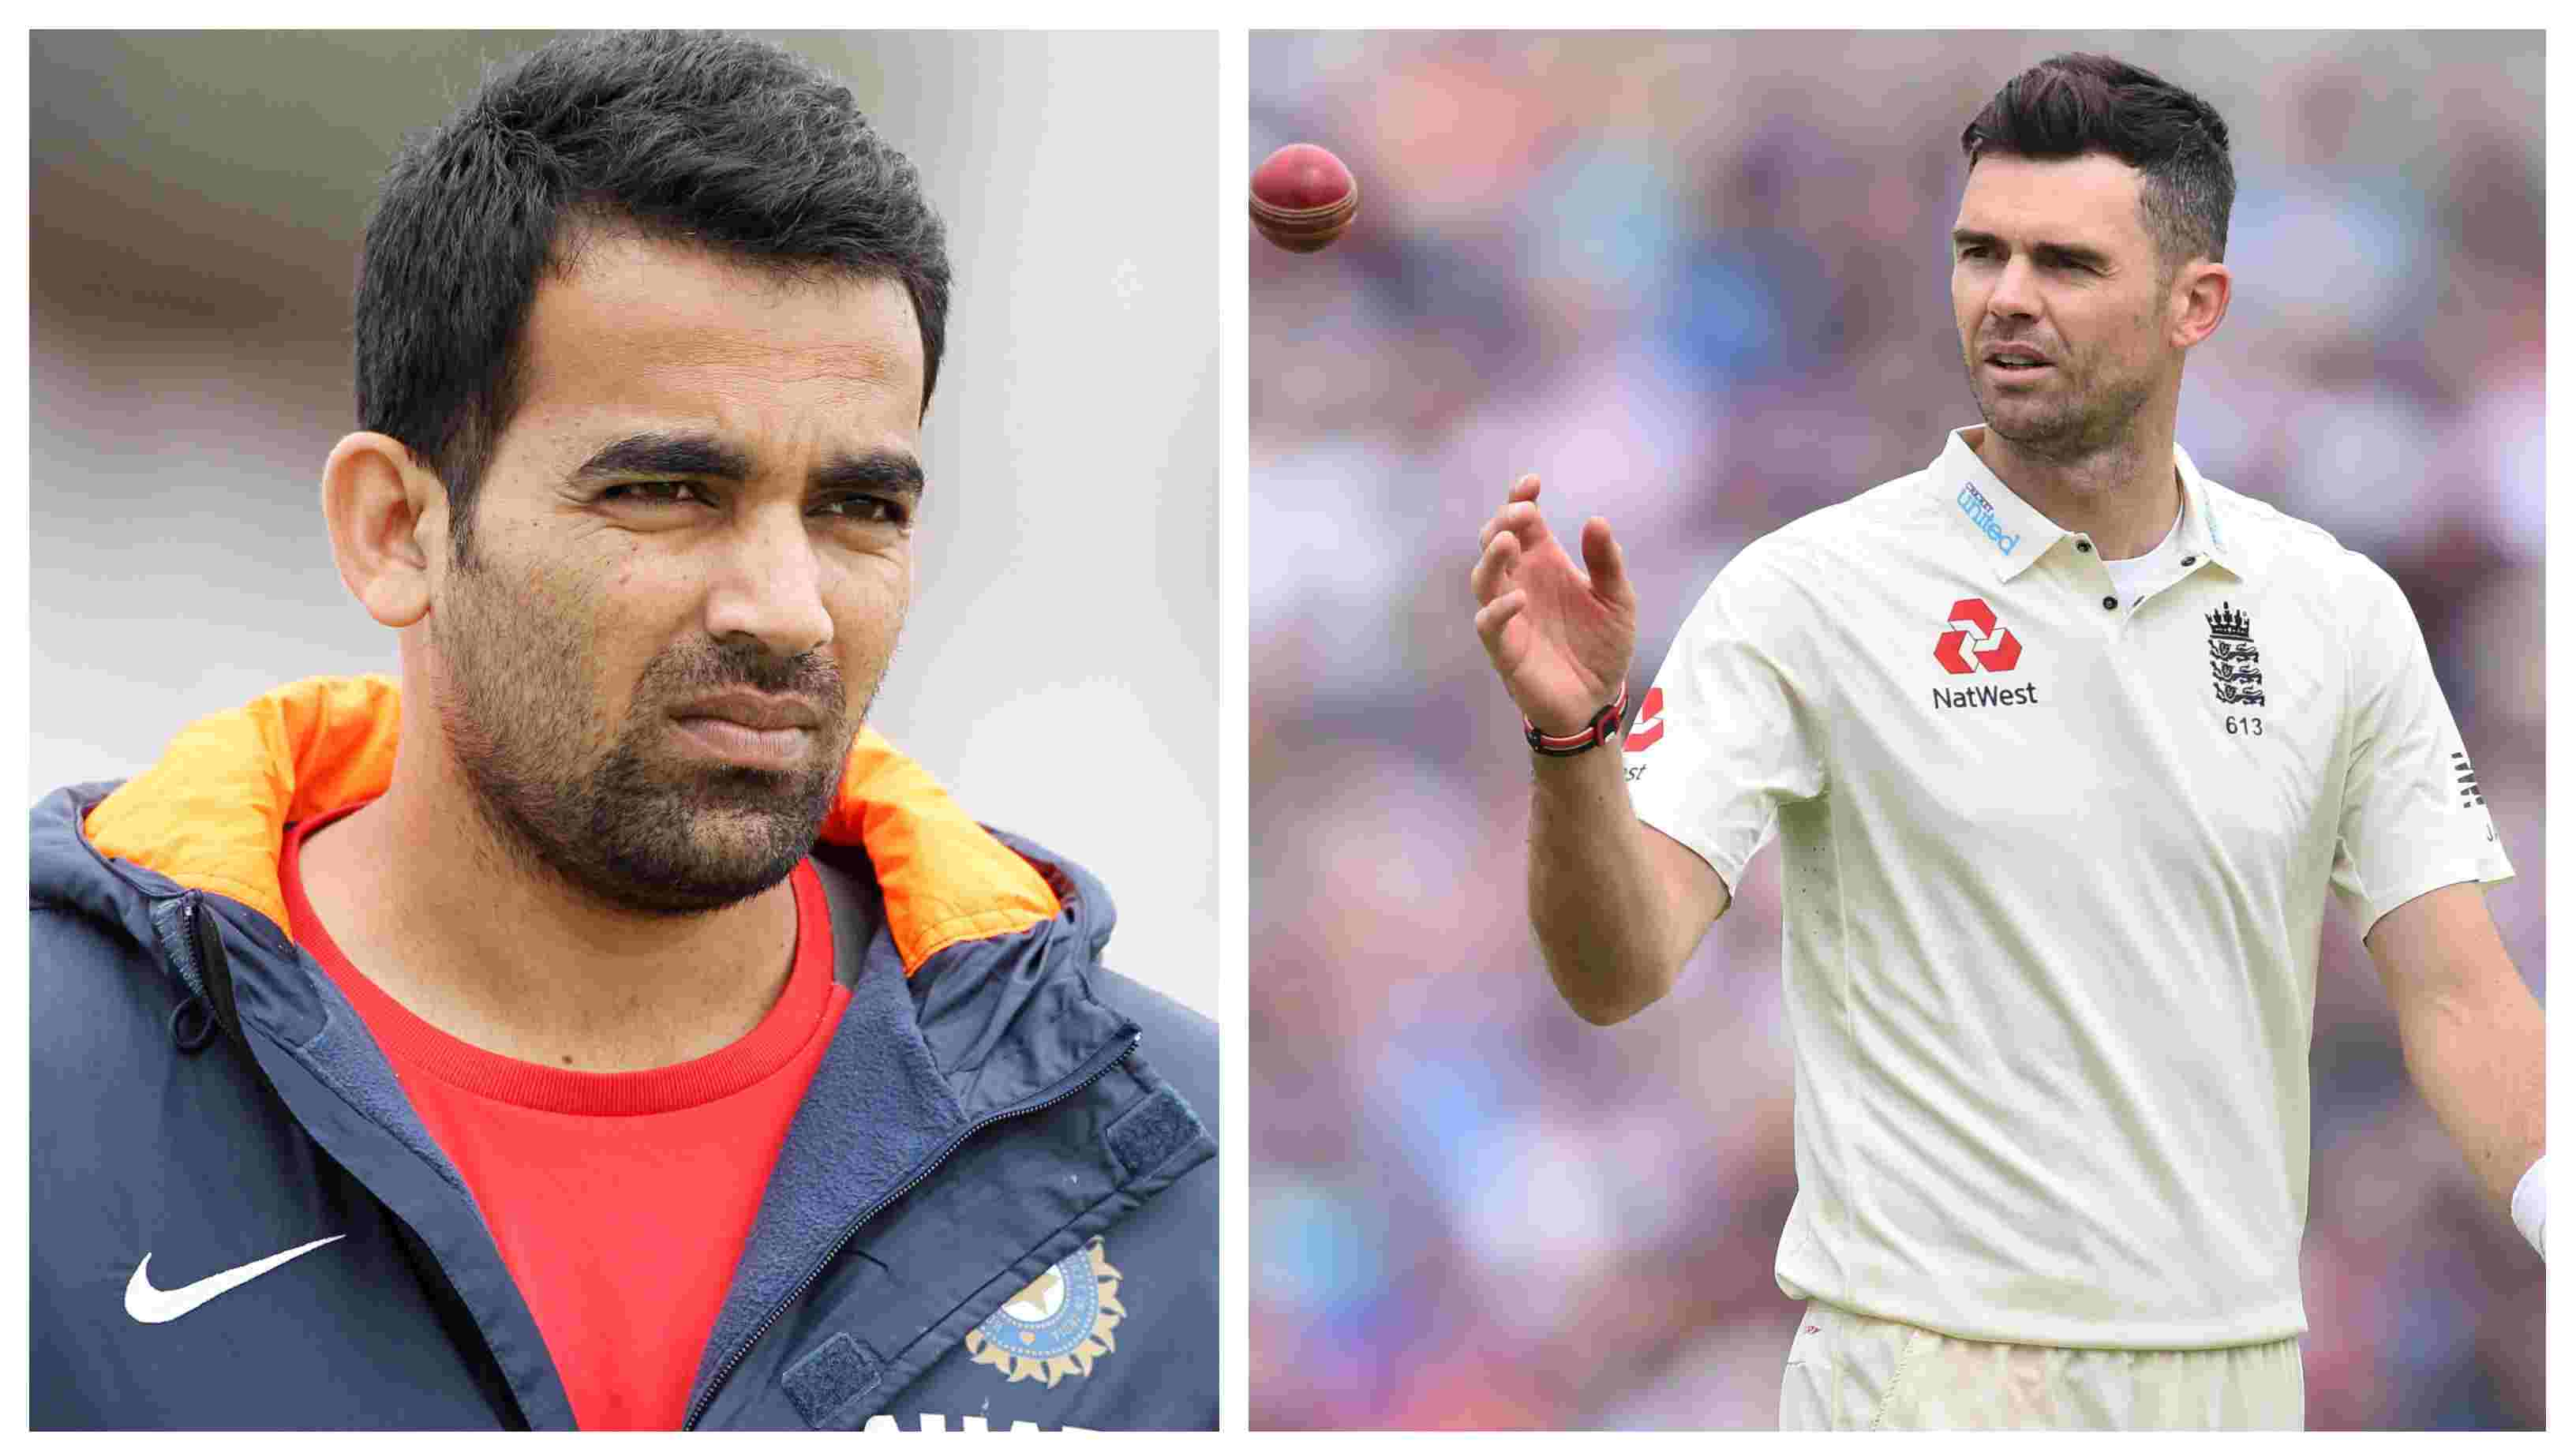 ENG v IND 2018: James Anderson might struggle if English conditions don't favour him, reckons Zaheer Khan